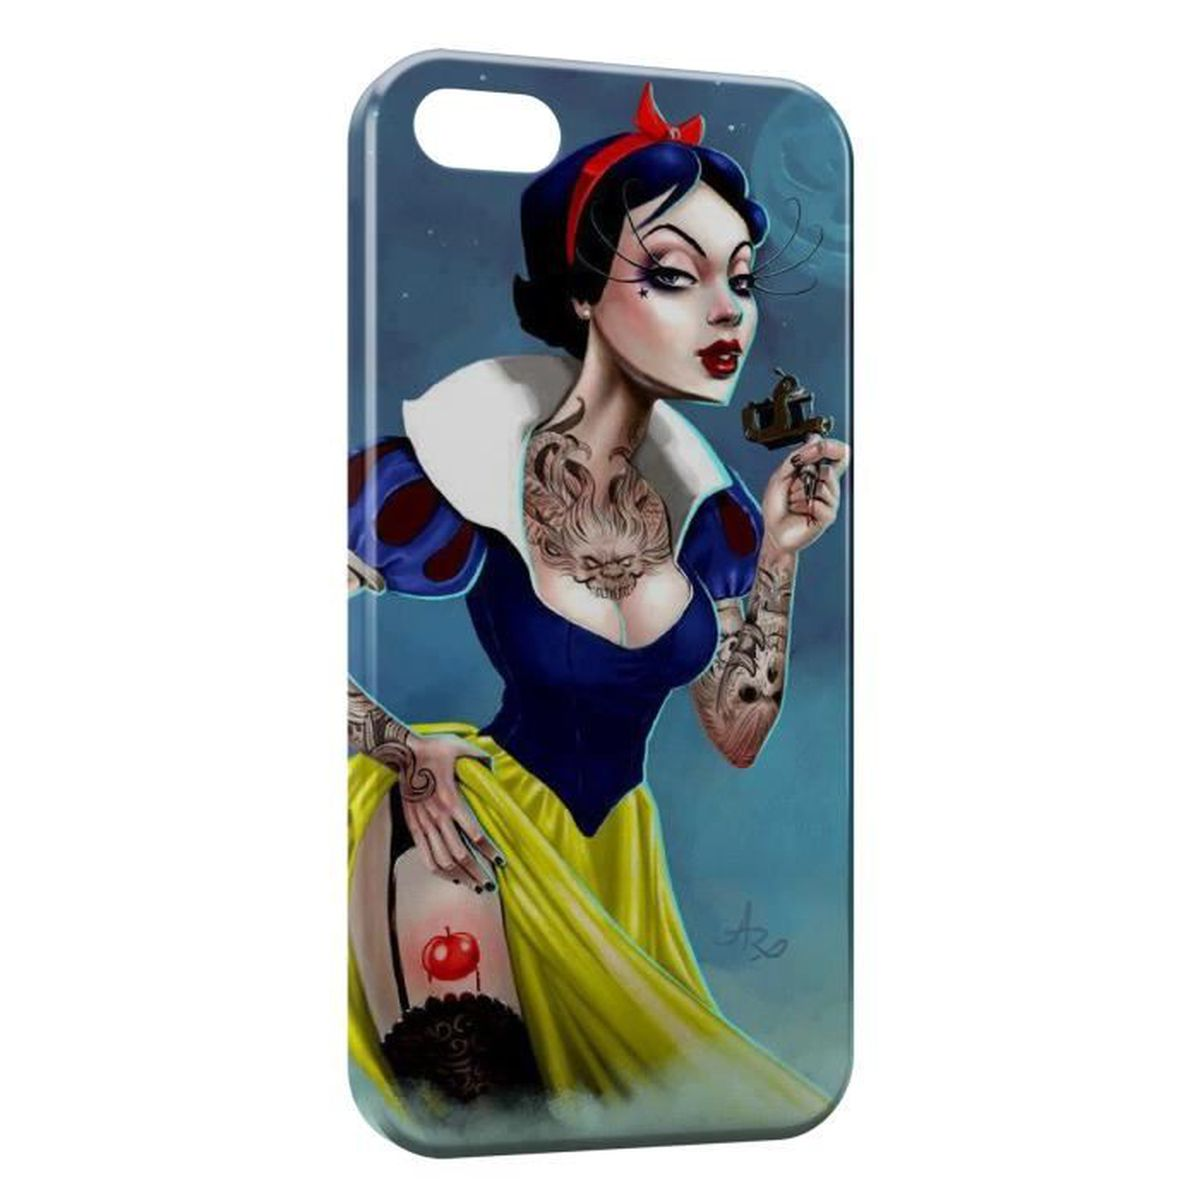 coque iphone 5 tattoo